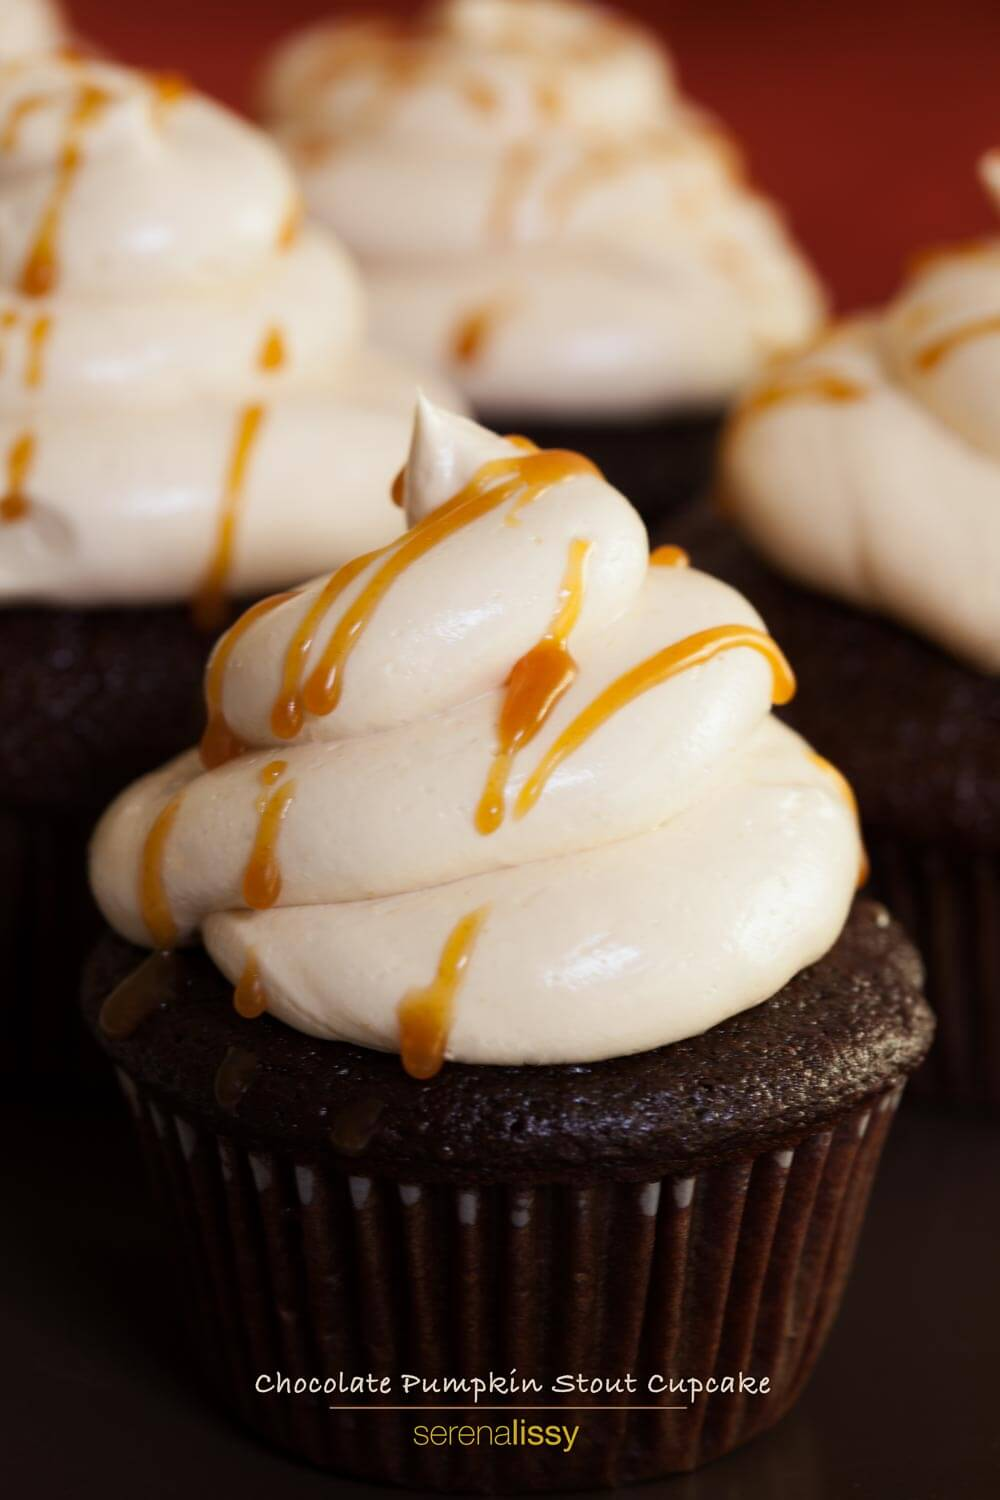 Chocolate stout cupcakes topped with salted caramel frosting and a drizzle of caramel.